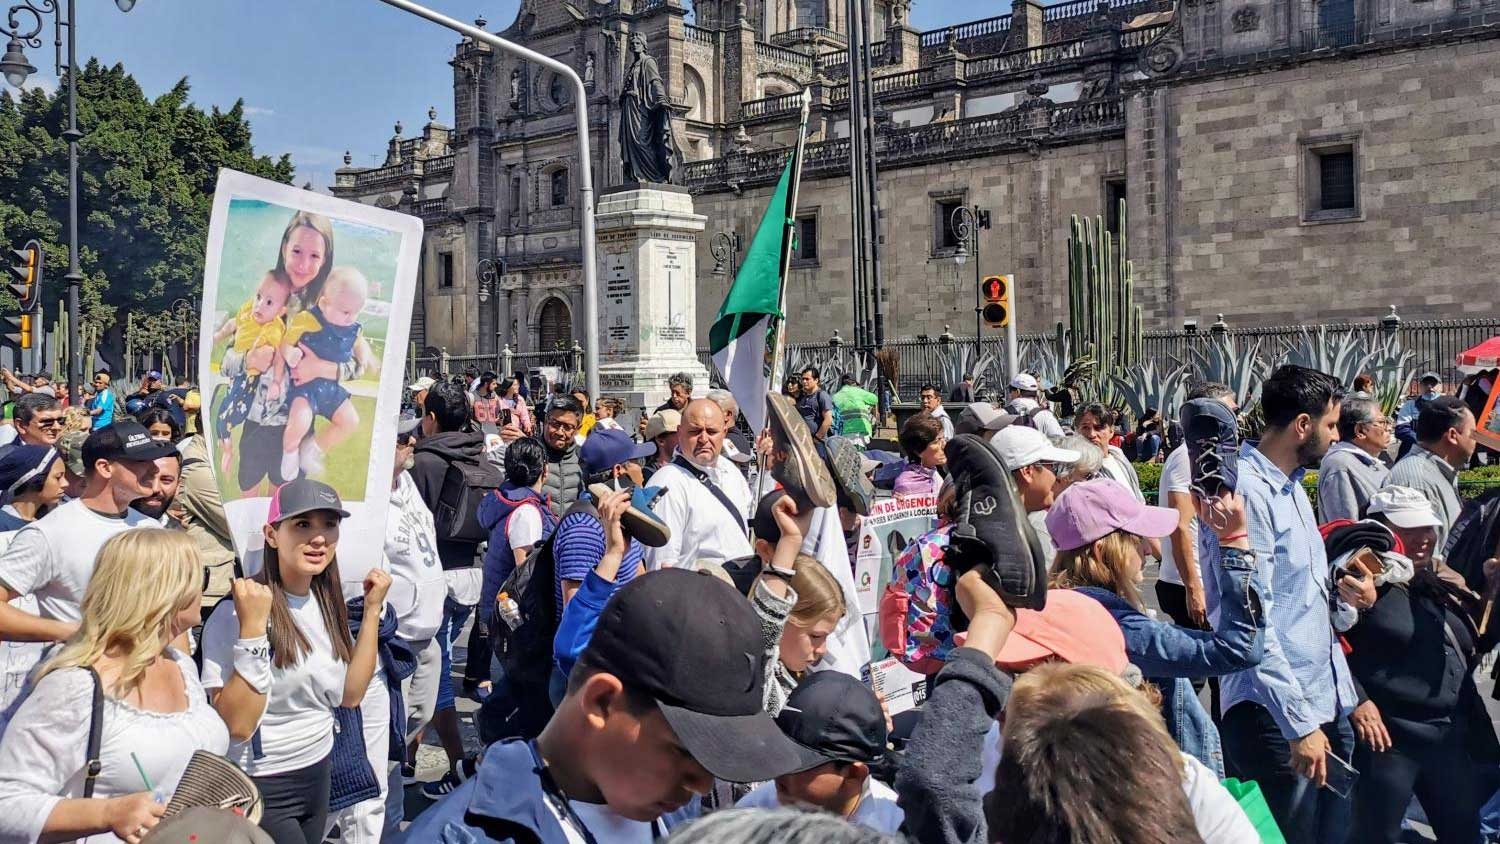 Led by the LeBarón family, hundreds gathered in Mexico City's downtown to protest against violence on Jan. 26, 2020.